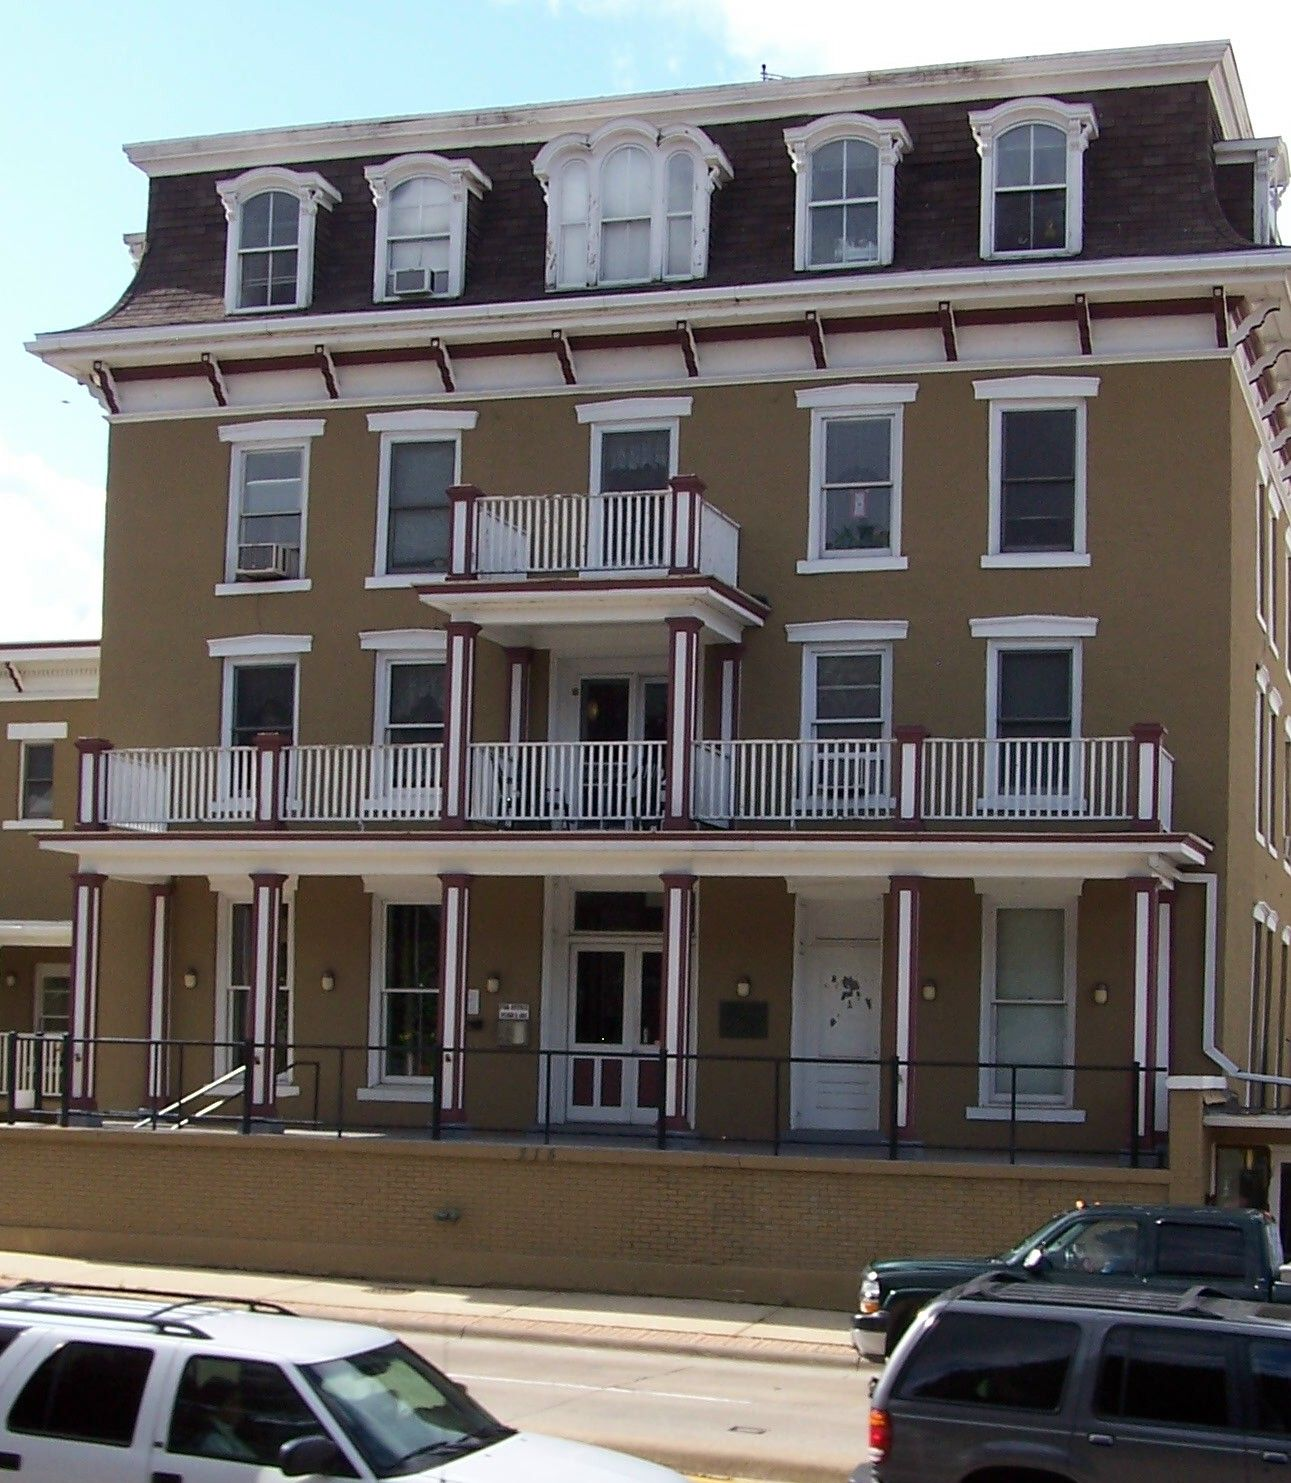 Nachusa House Hotel In Dixon Il One Of The Oldest Historic